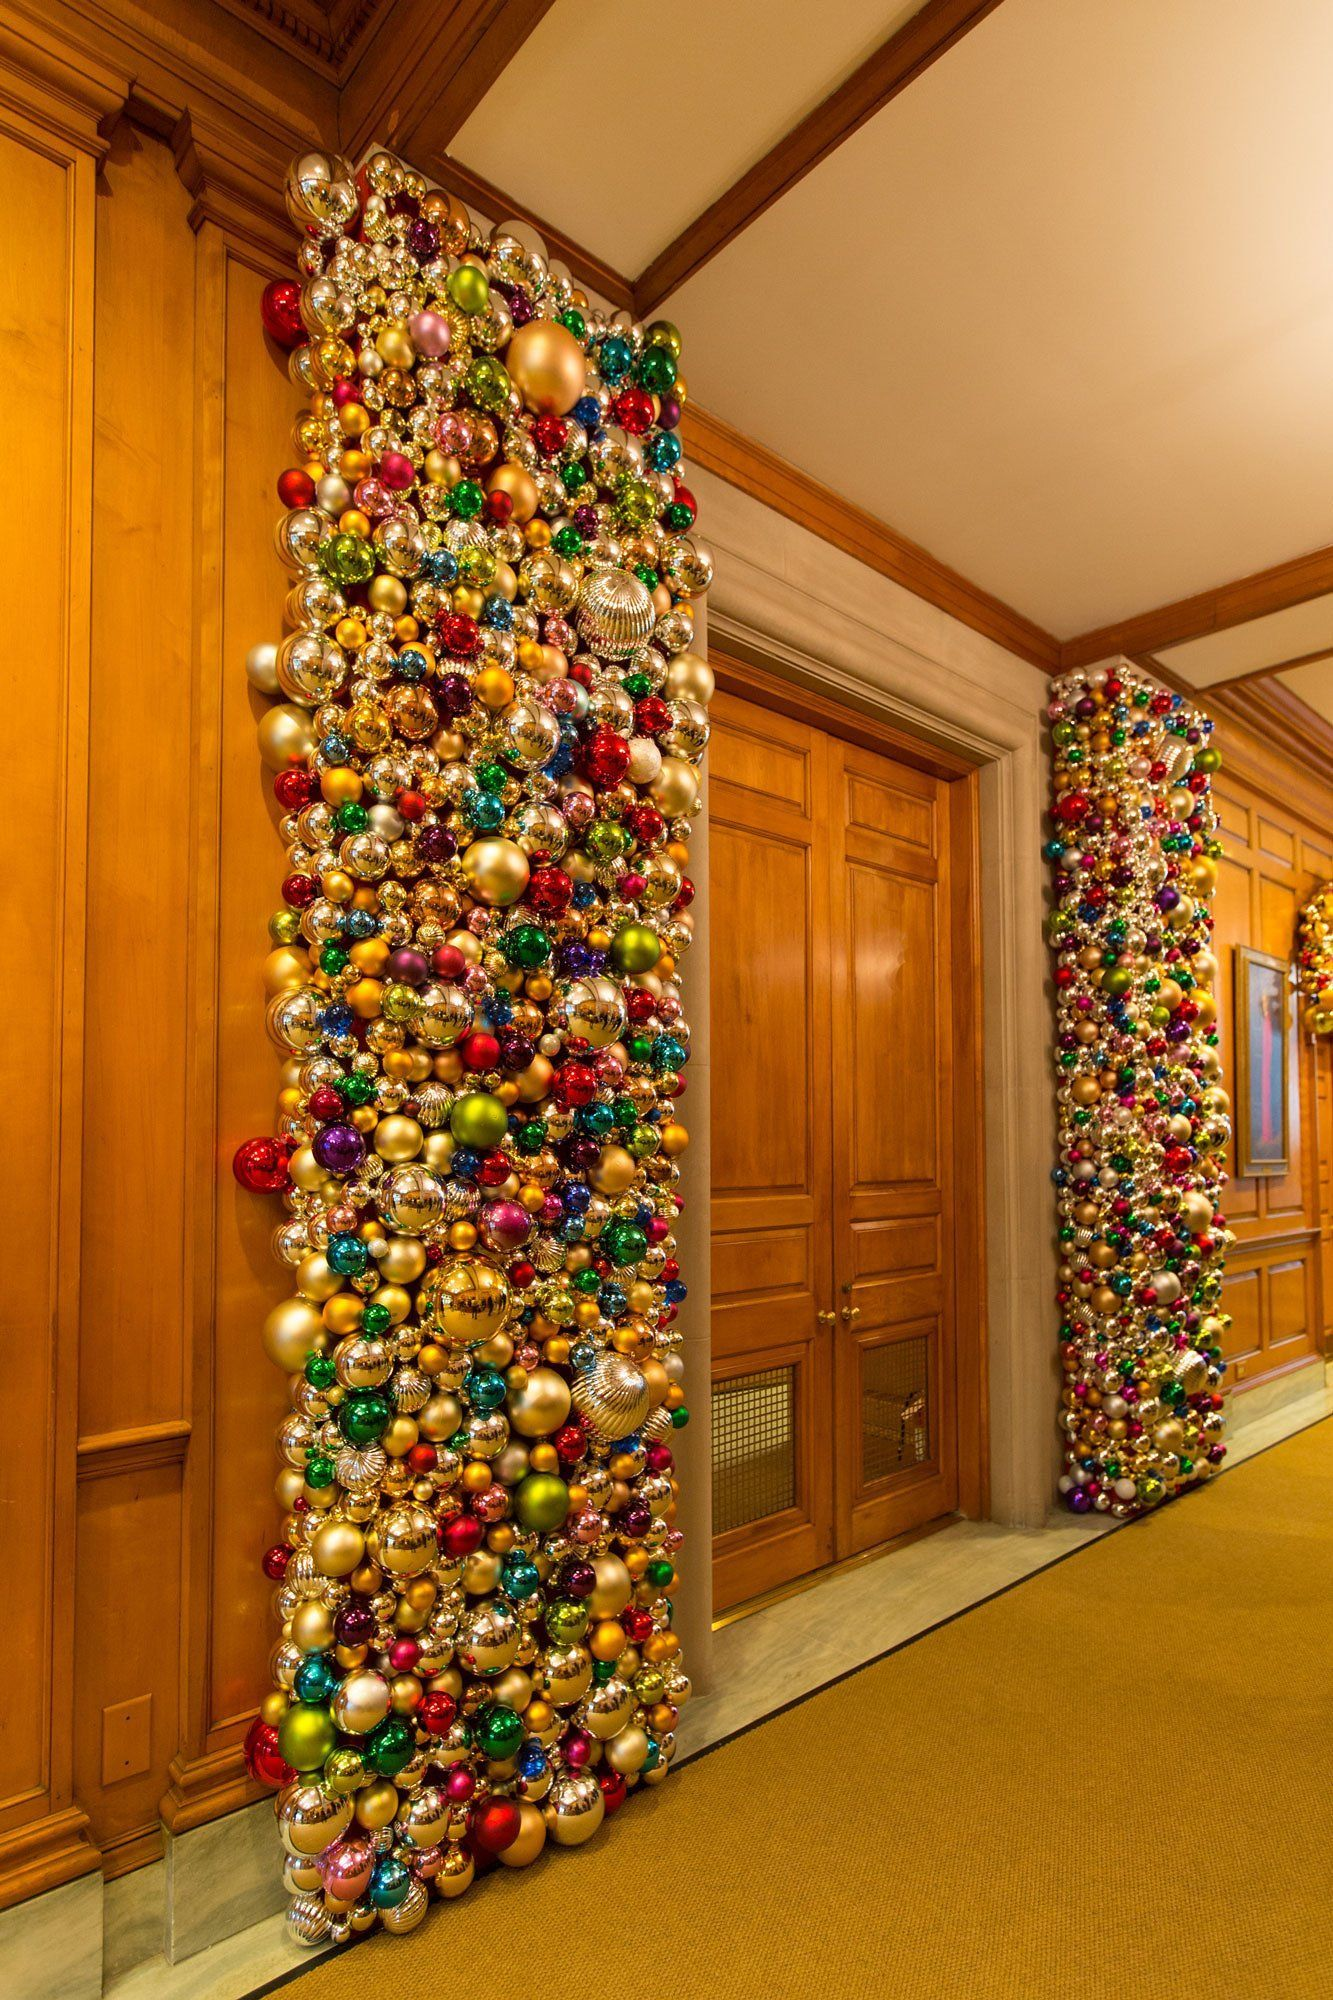 White House Christmas Decorations 2019.Decorating For Christmas Decorating Your Whole Home